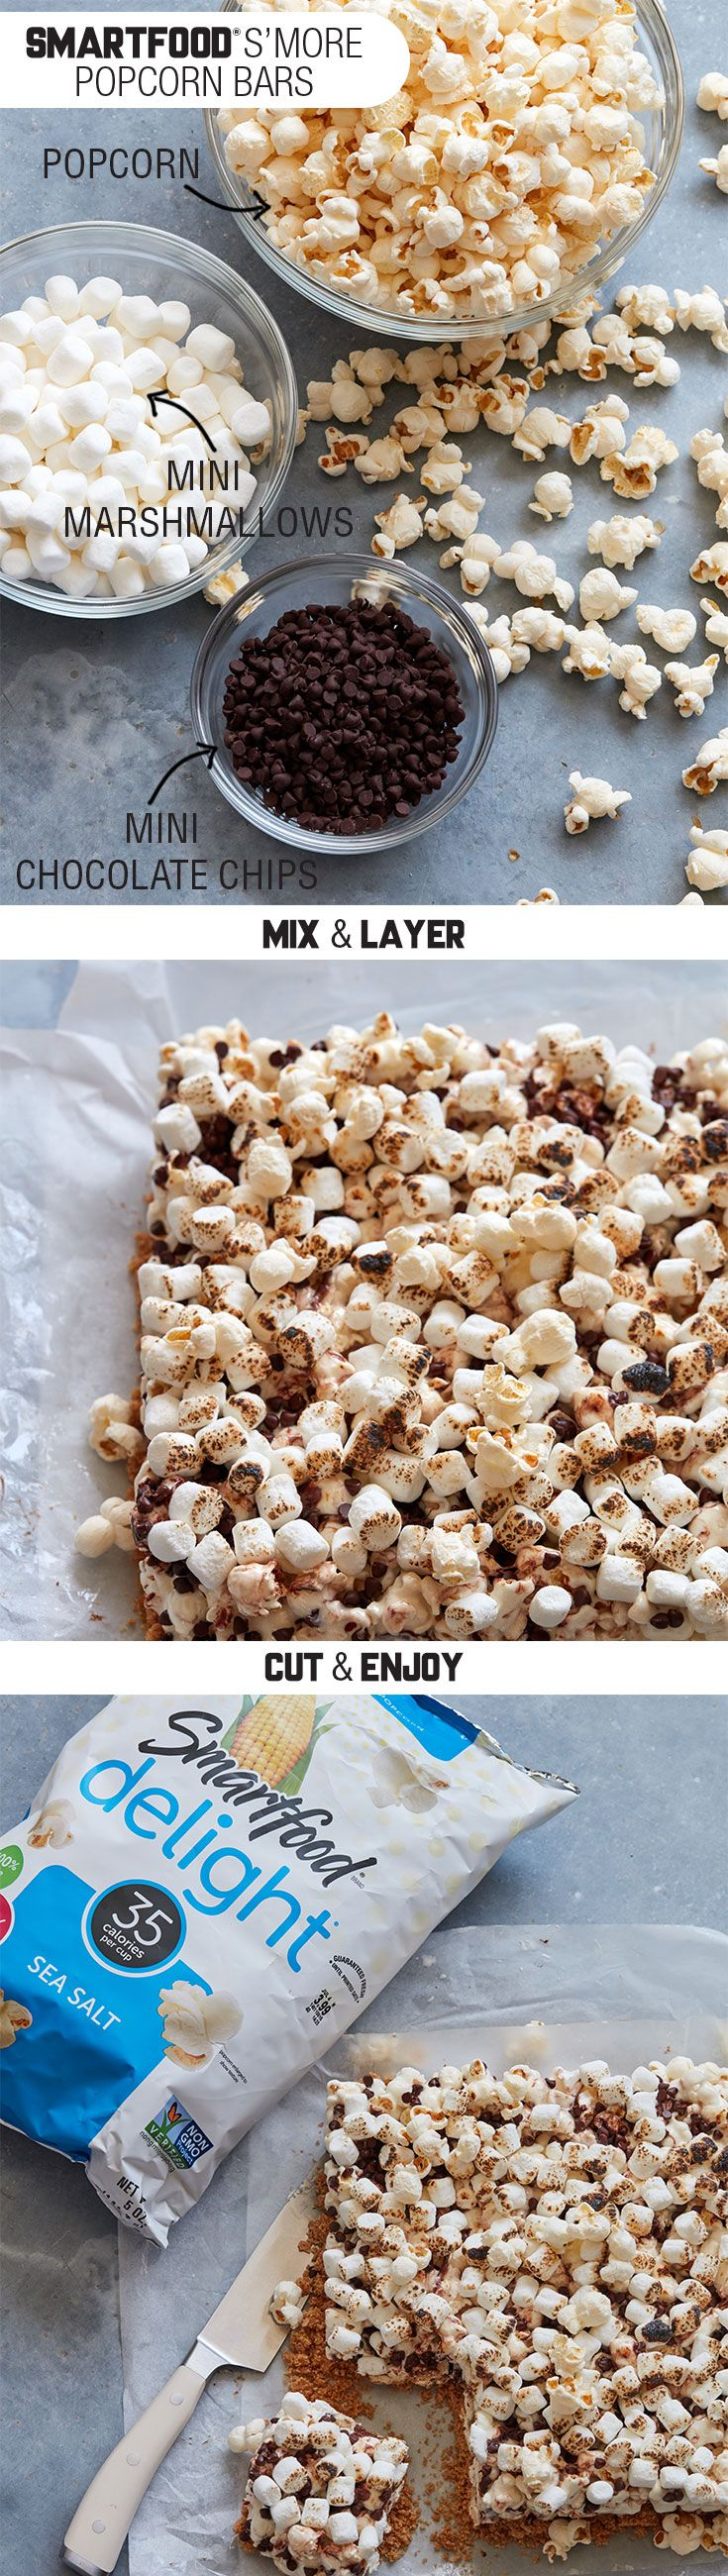 Sponsored by Frito-Lay | Looking for a summer game changer? These Smartfood® S'more Popcorn Bars will do just the trick. Grab some mini marshmallows, graham cracker crumbs, chocolate chips, and Smartfood Delight®  sea salt popcorn, and in no time you'll have the perfect treat to pair with your favorite Frito-Lay® products and share at any summer party.